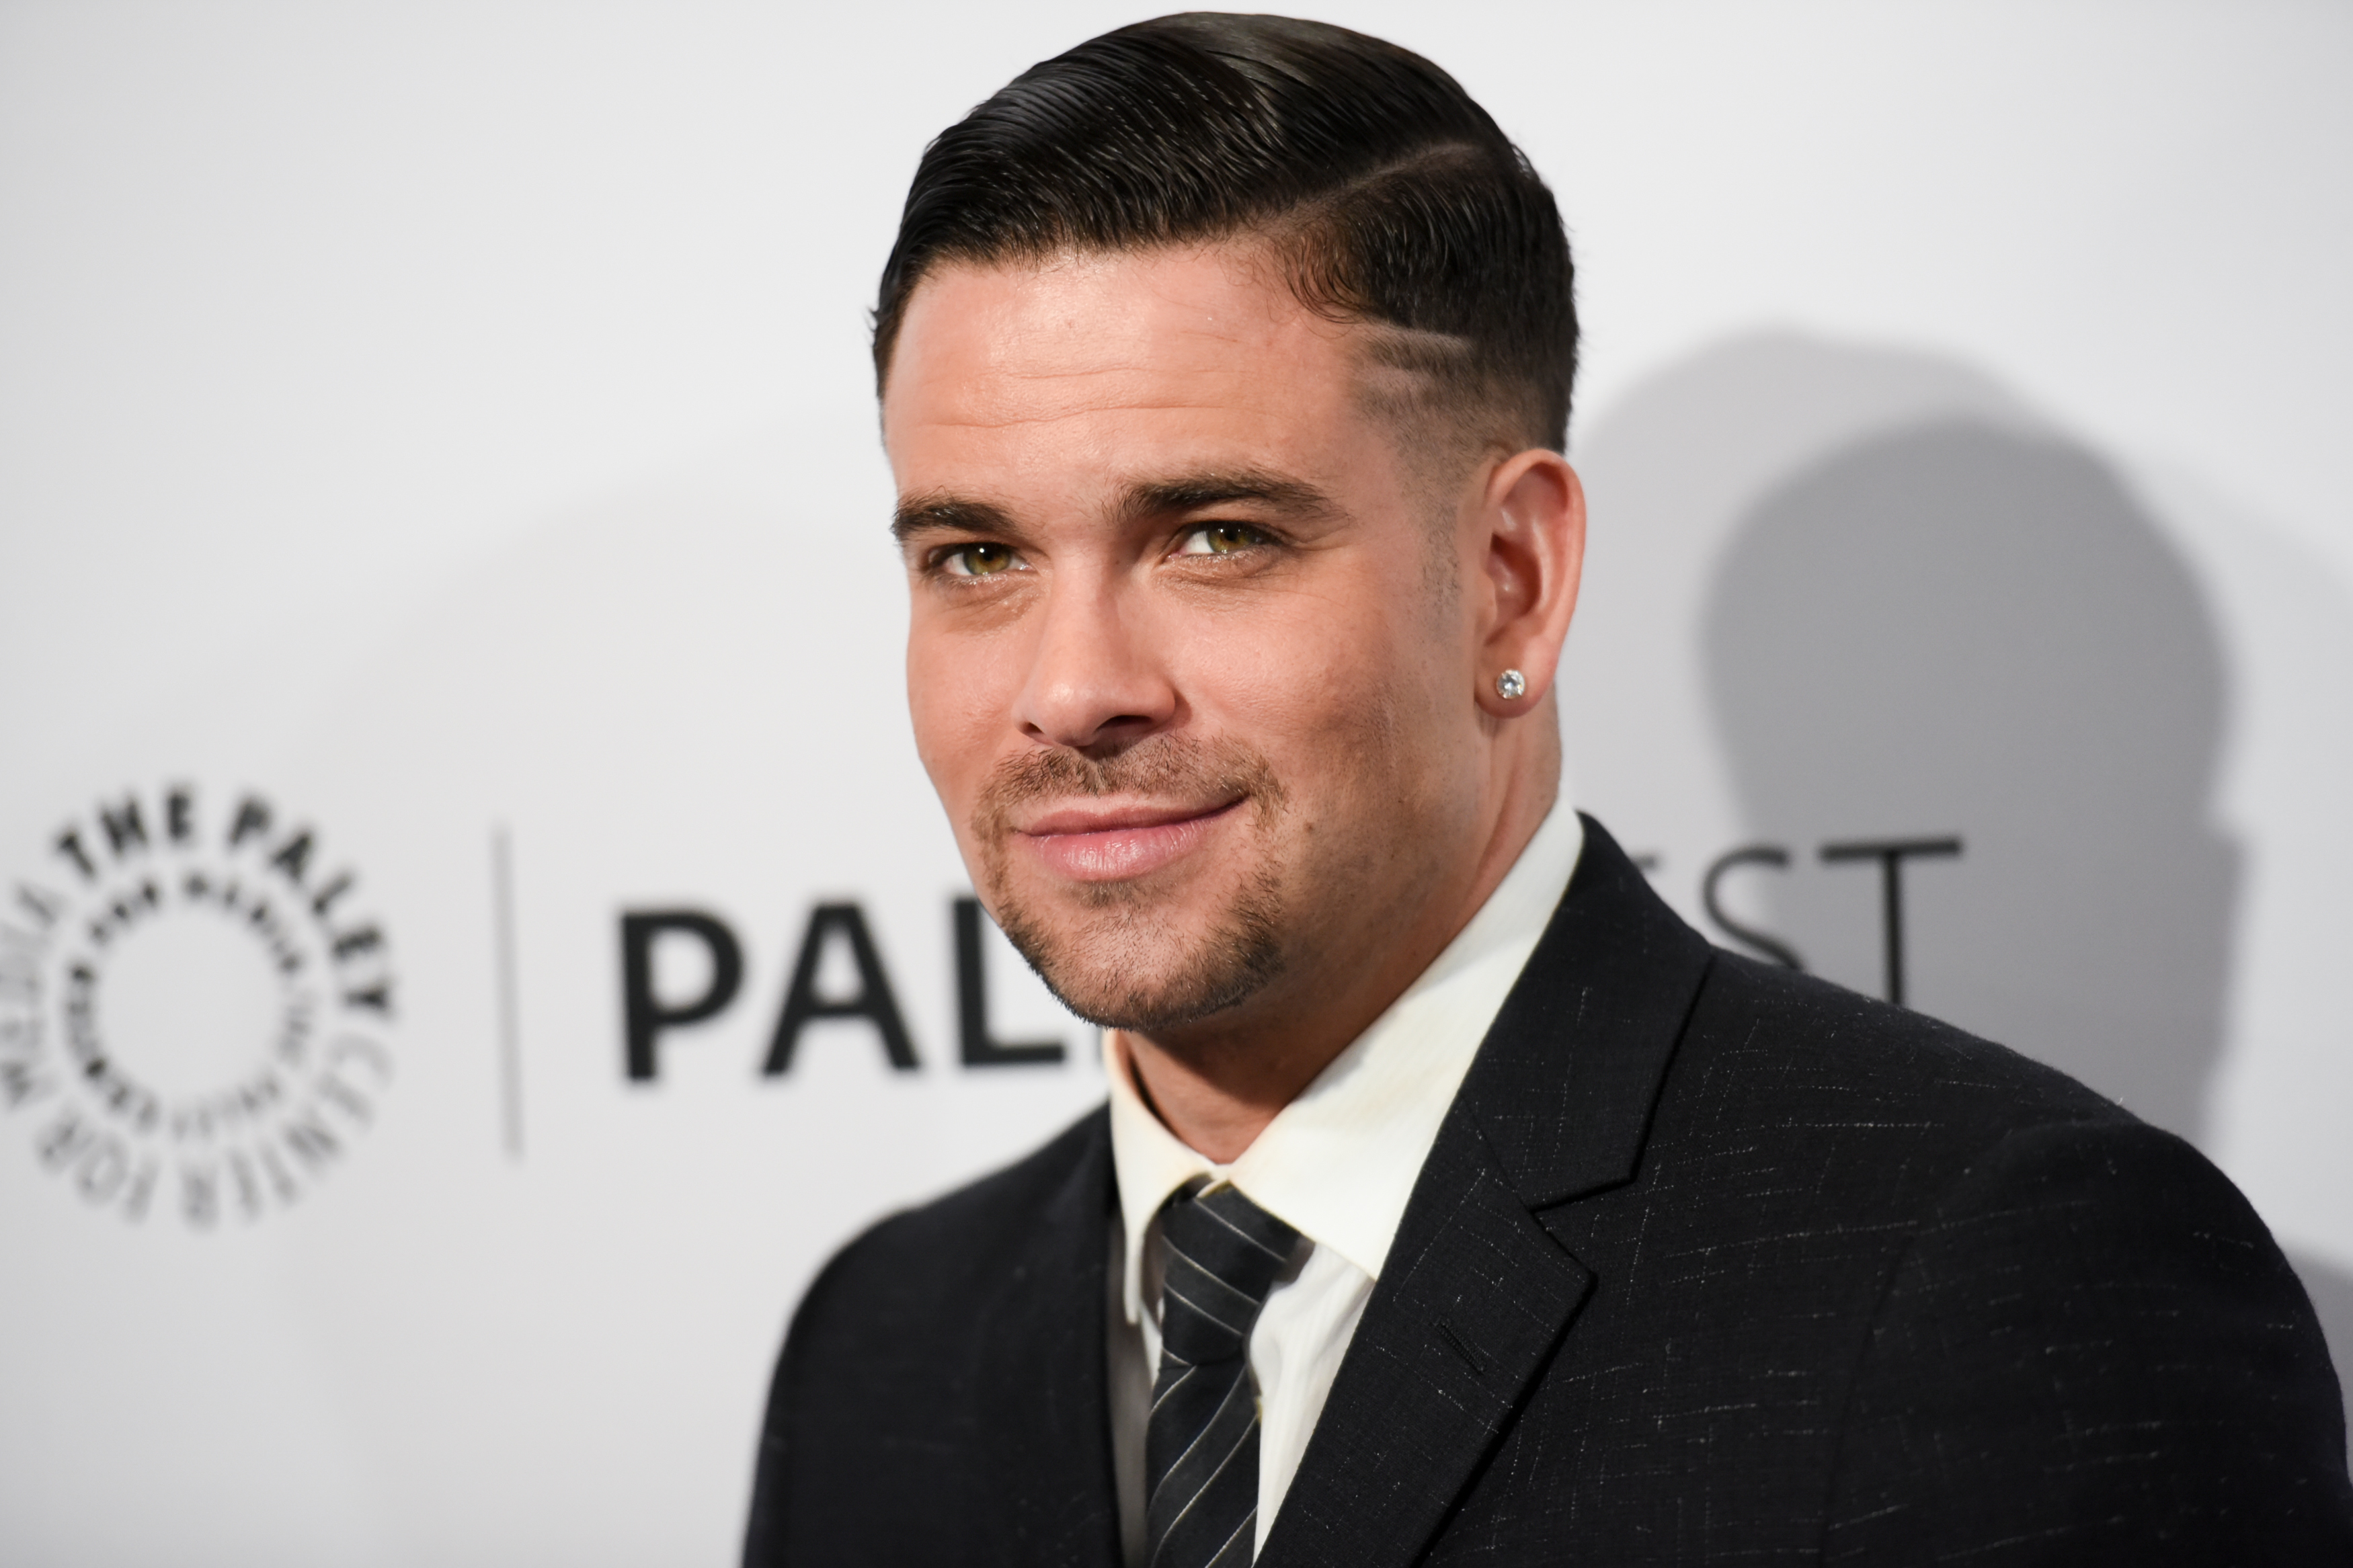 "FILE - In this March 13, 2015 file photo, Mark Salling arrives at the 32nd Annual Paleyfest ""Glee"" held at The Dolby Theatre in Los Angeles. Authorities say former Â?GleeÂ? star Salling has been arrested in Los Angeles for investigation of possessing child pornography. Los Angeles Police officer Tony Im says the 33-year-old actor was taken into custody Tuesday, Dec. 29, 2015, after a warrant was served at his home in the Sunland neighborhood. (Photo by Richard Shotwell/Invision/AP, File)"